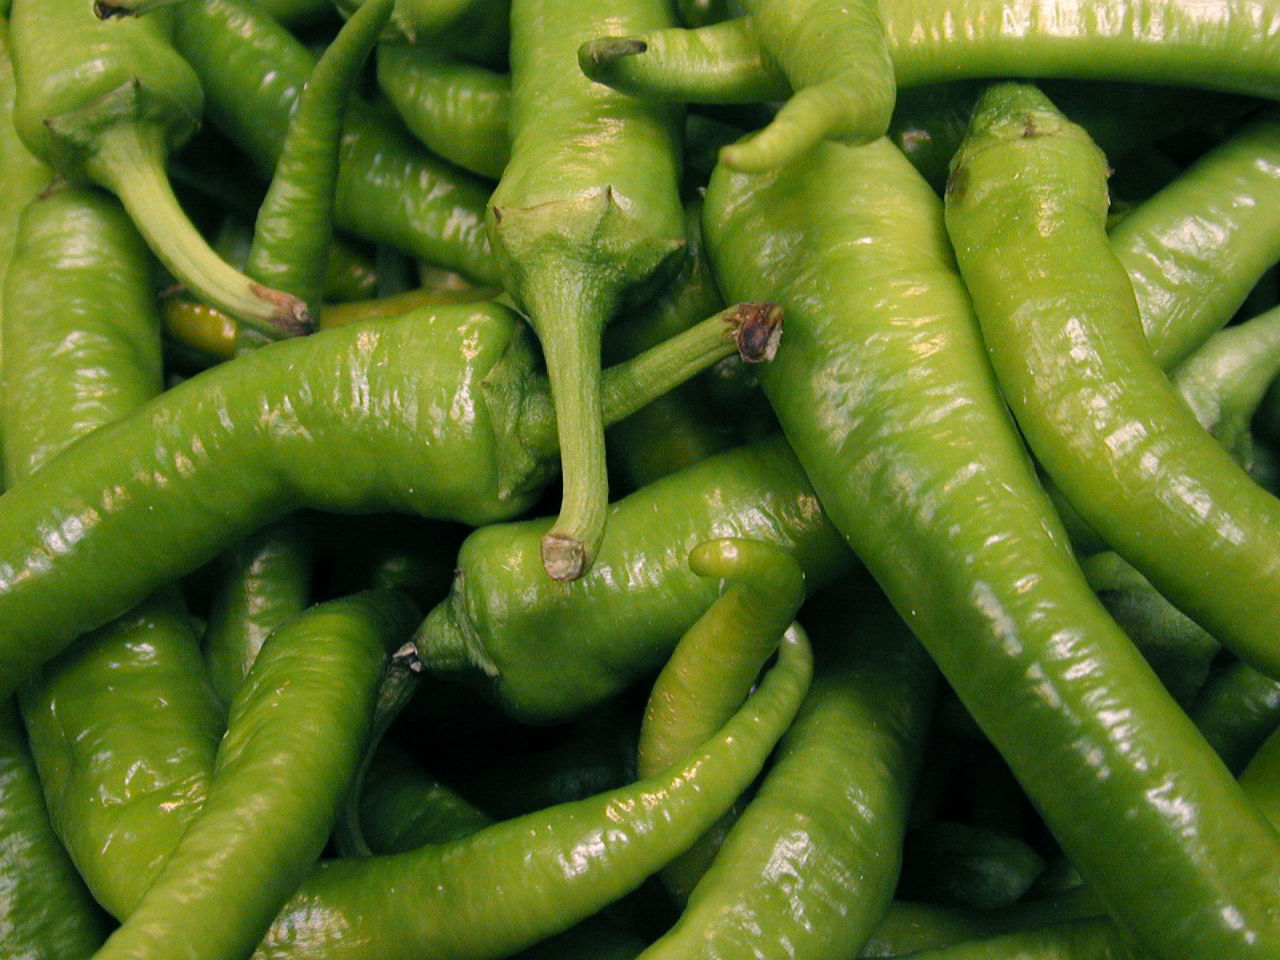 take-chillis-for-your-achard-preparation